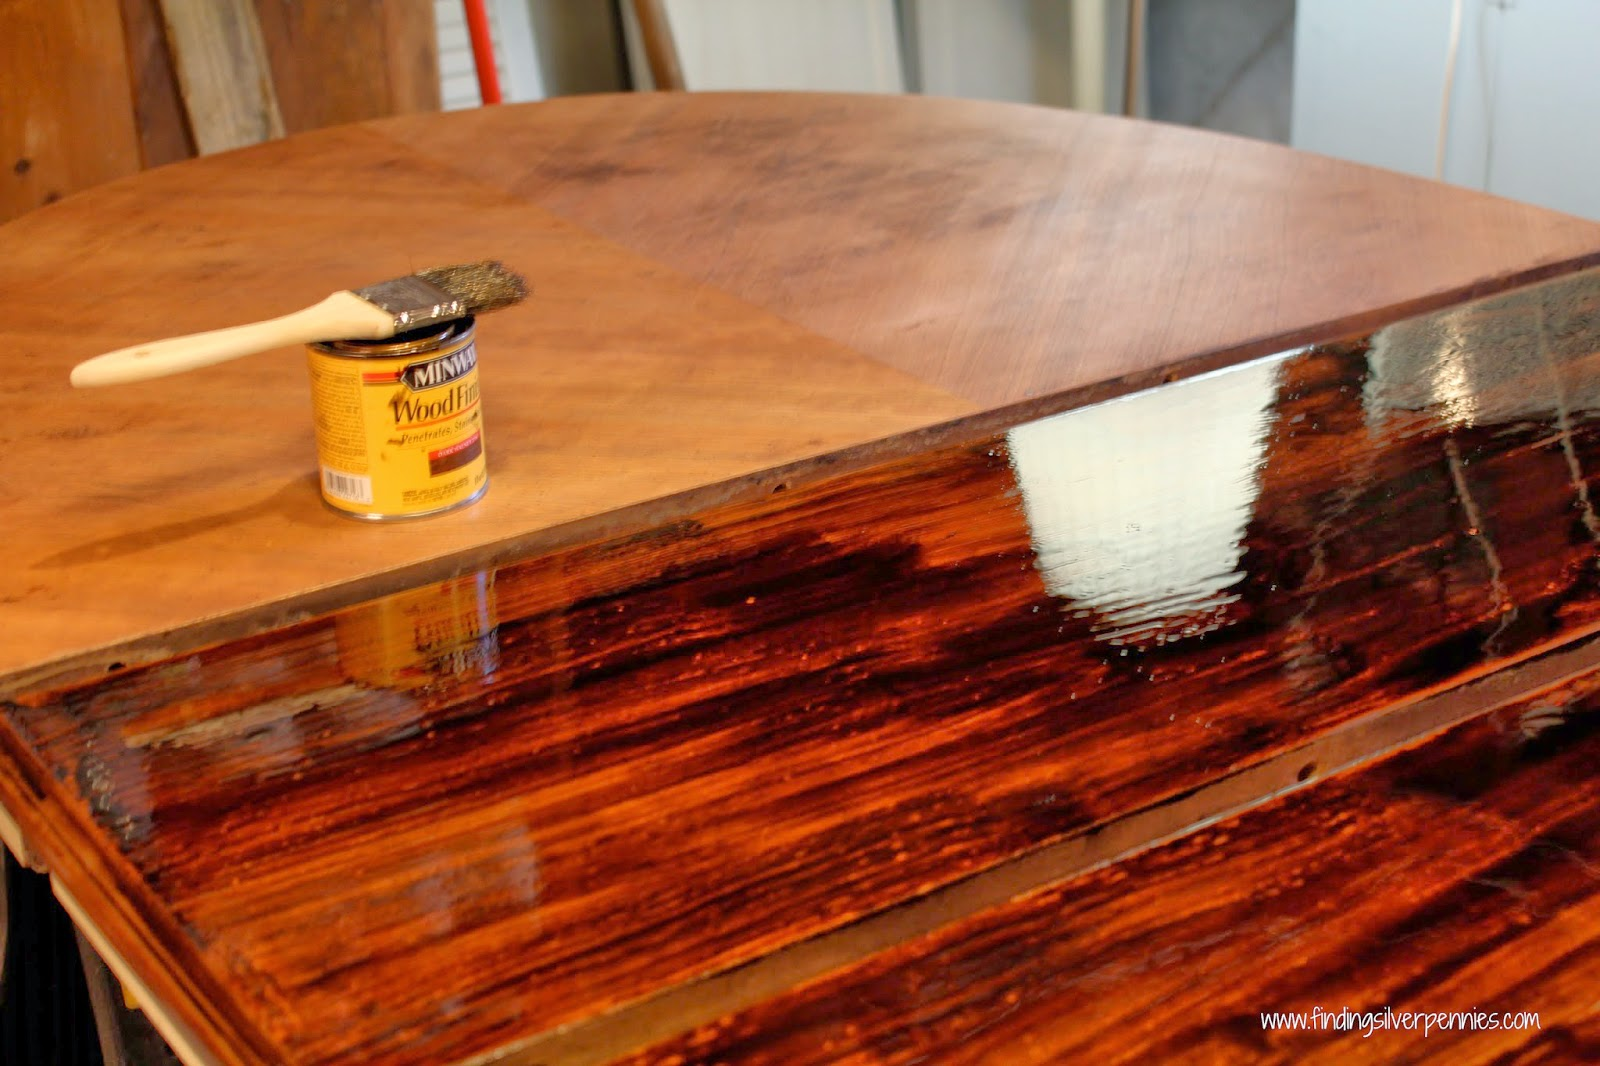 Staining furniture 101 finding silver pennies for Furniture 101